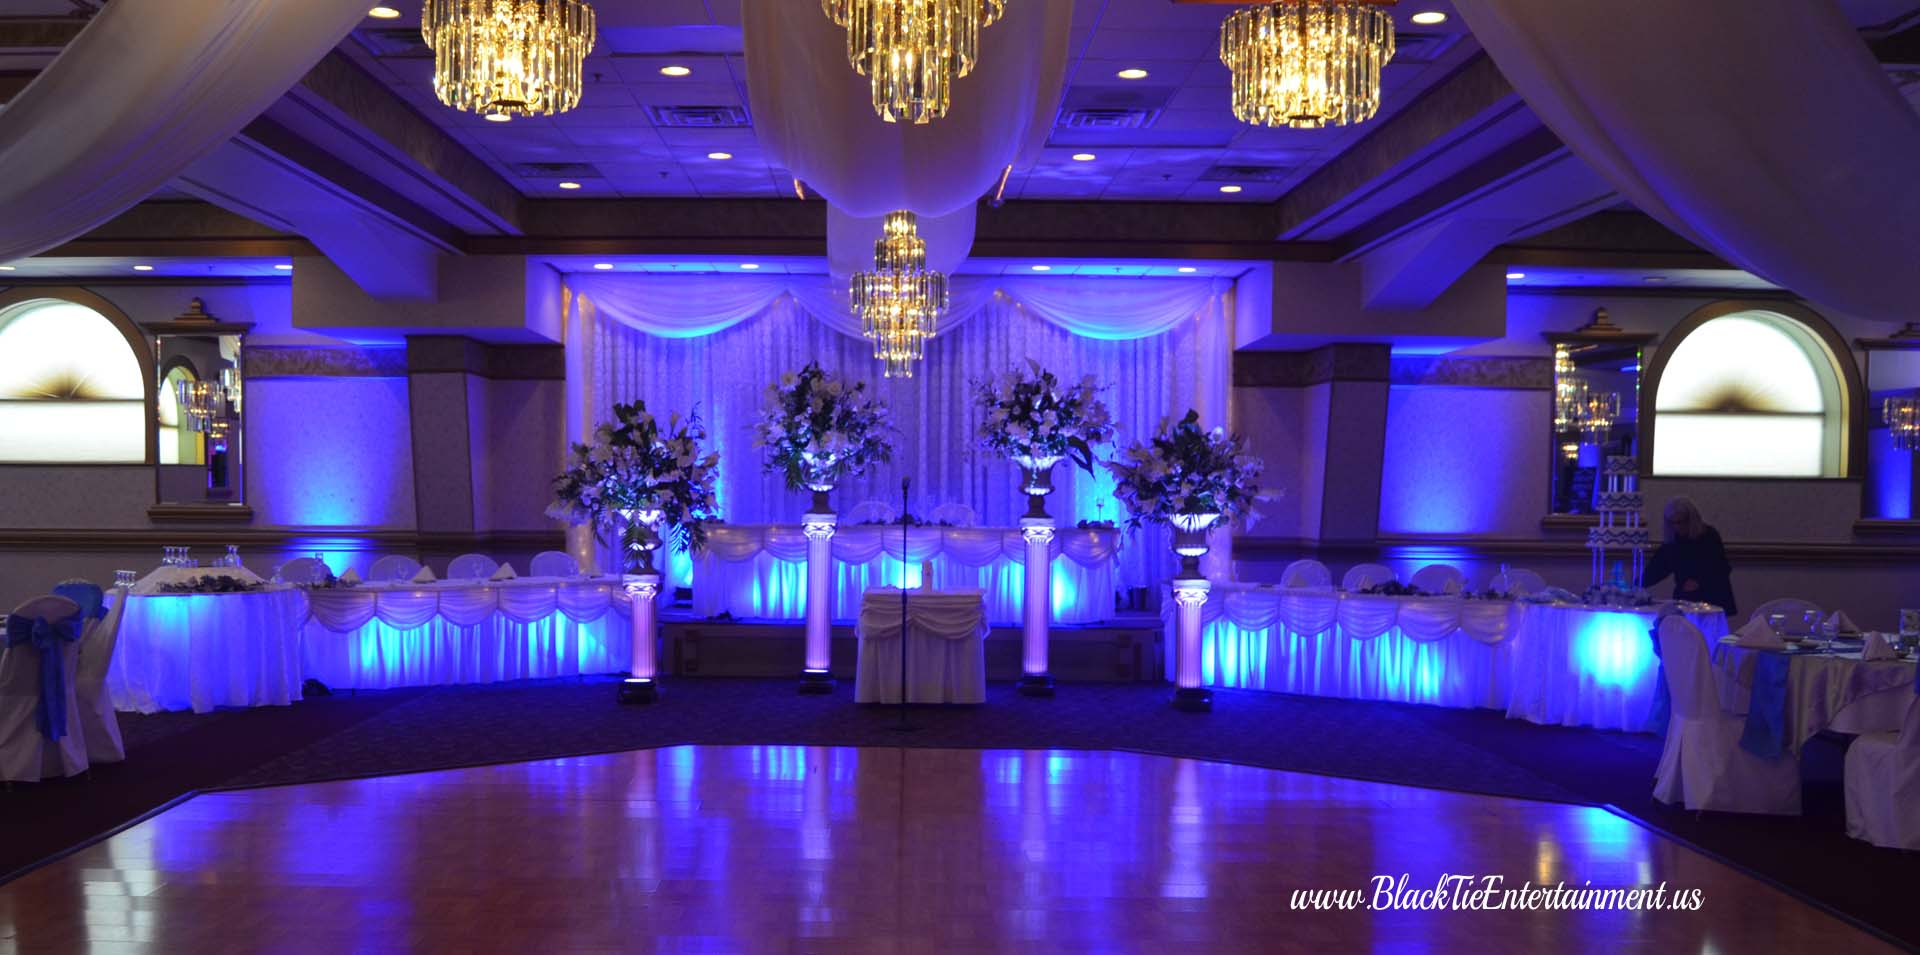 Up Lighting - Black Tie Entertainment at Guys Party Center